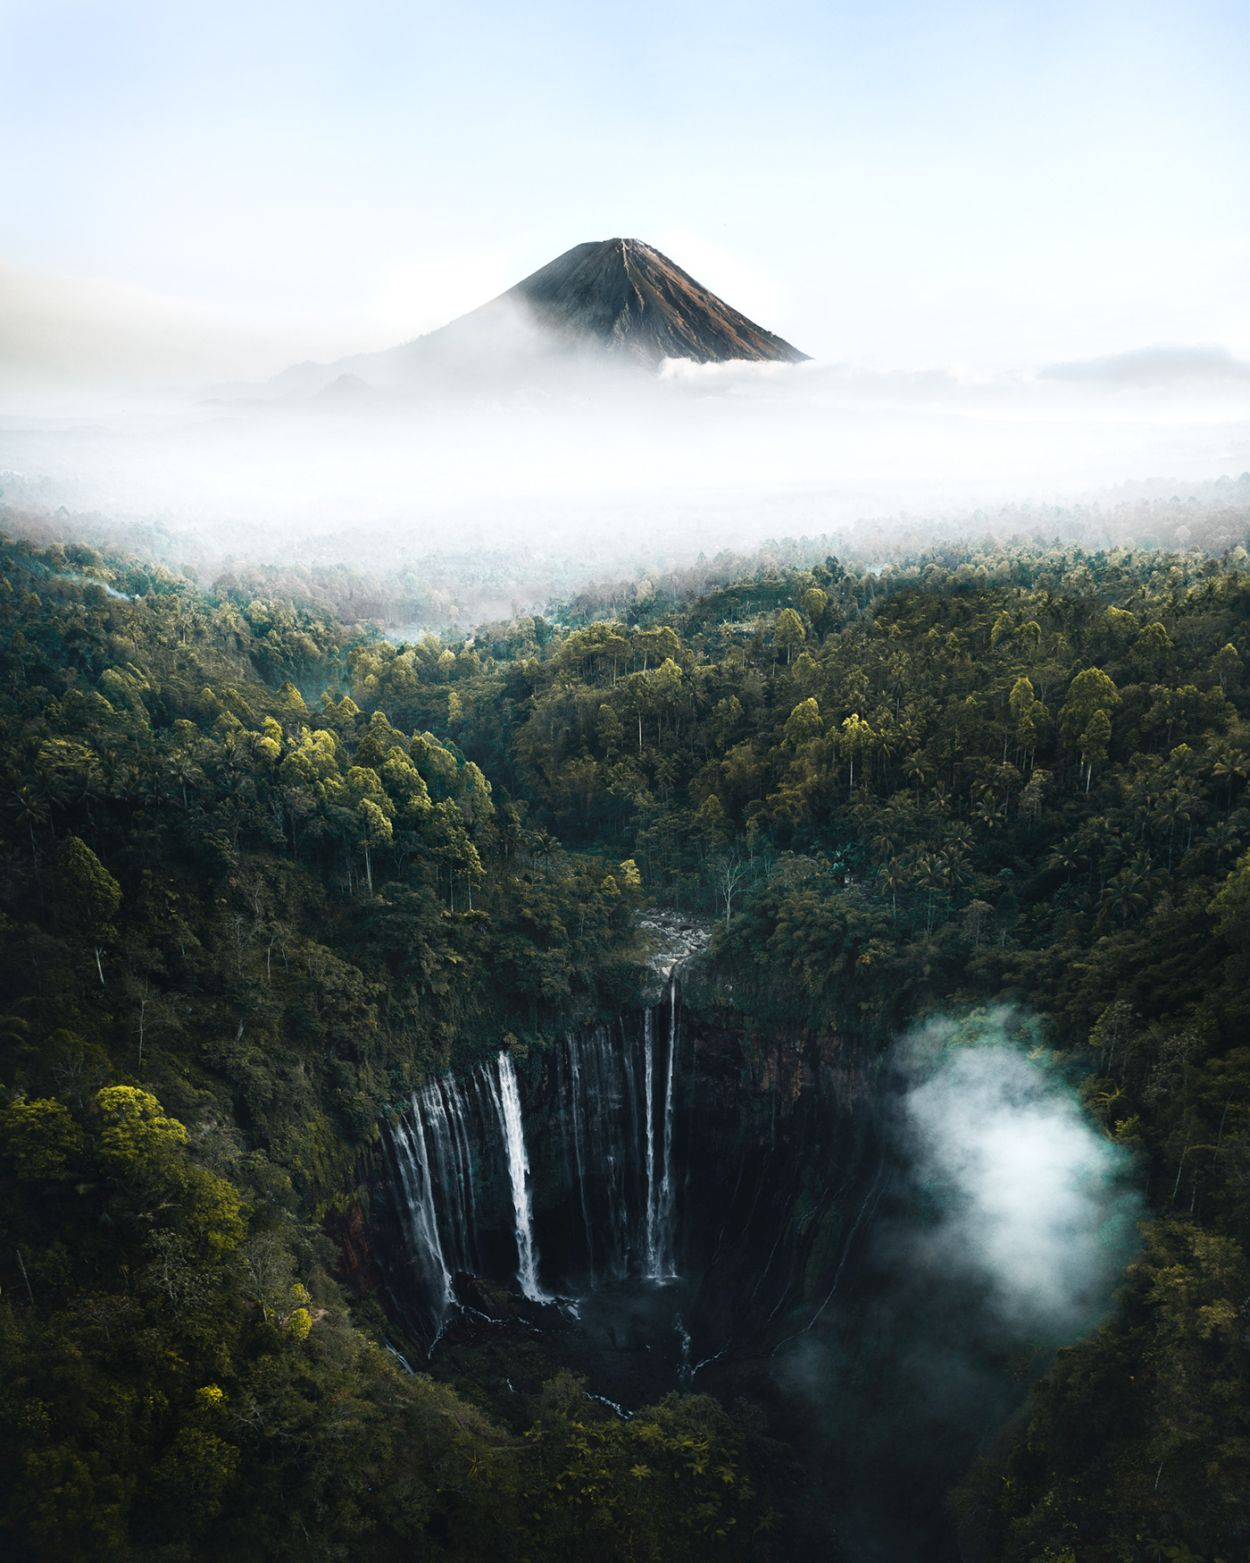 landscape photography indonesia by witold ziomek